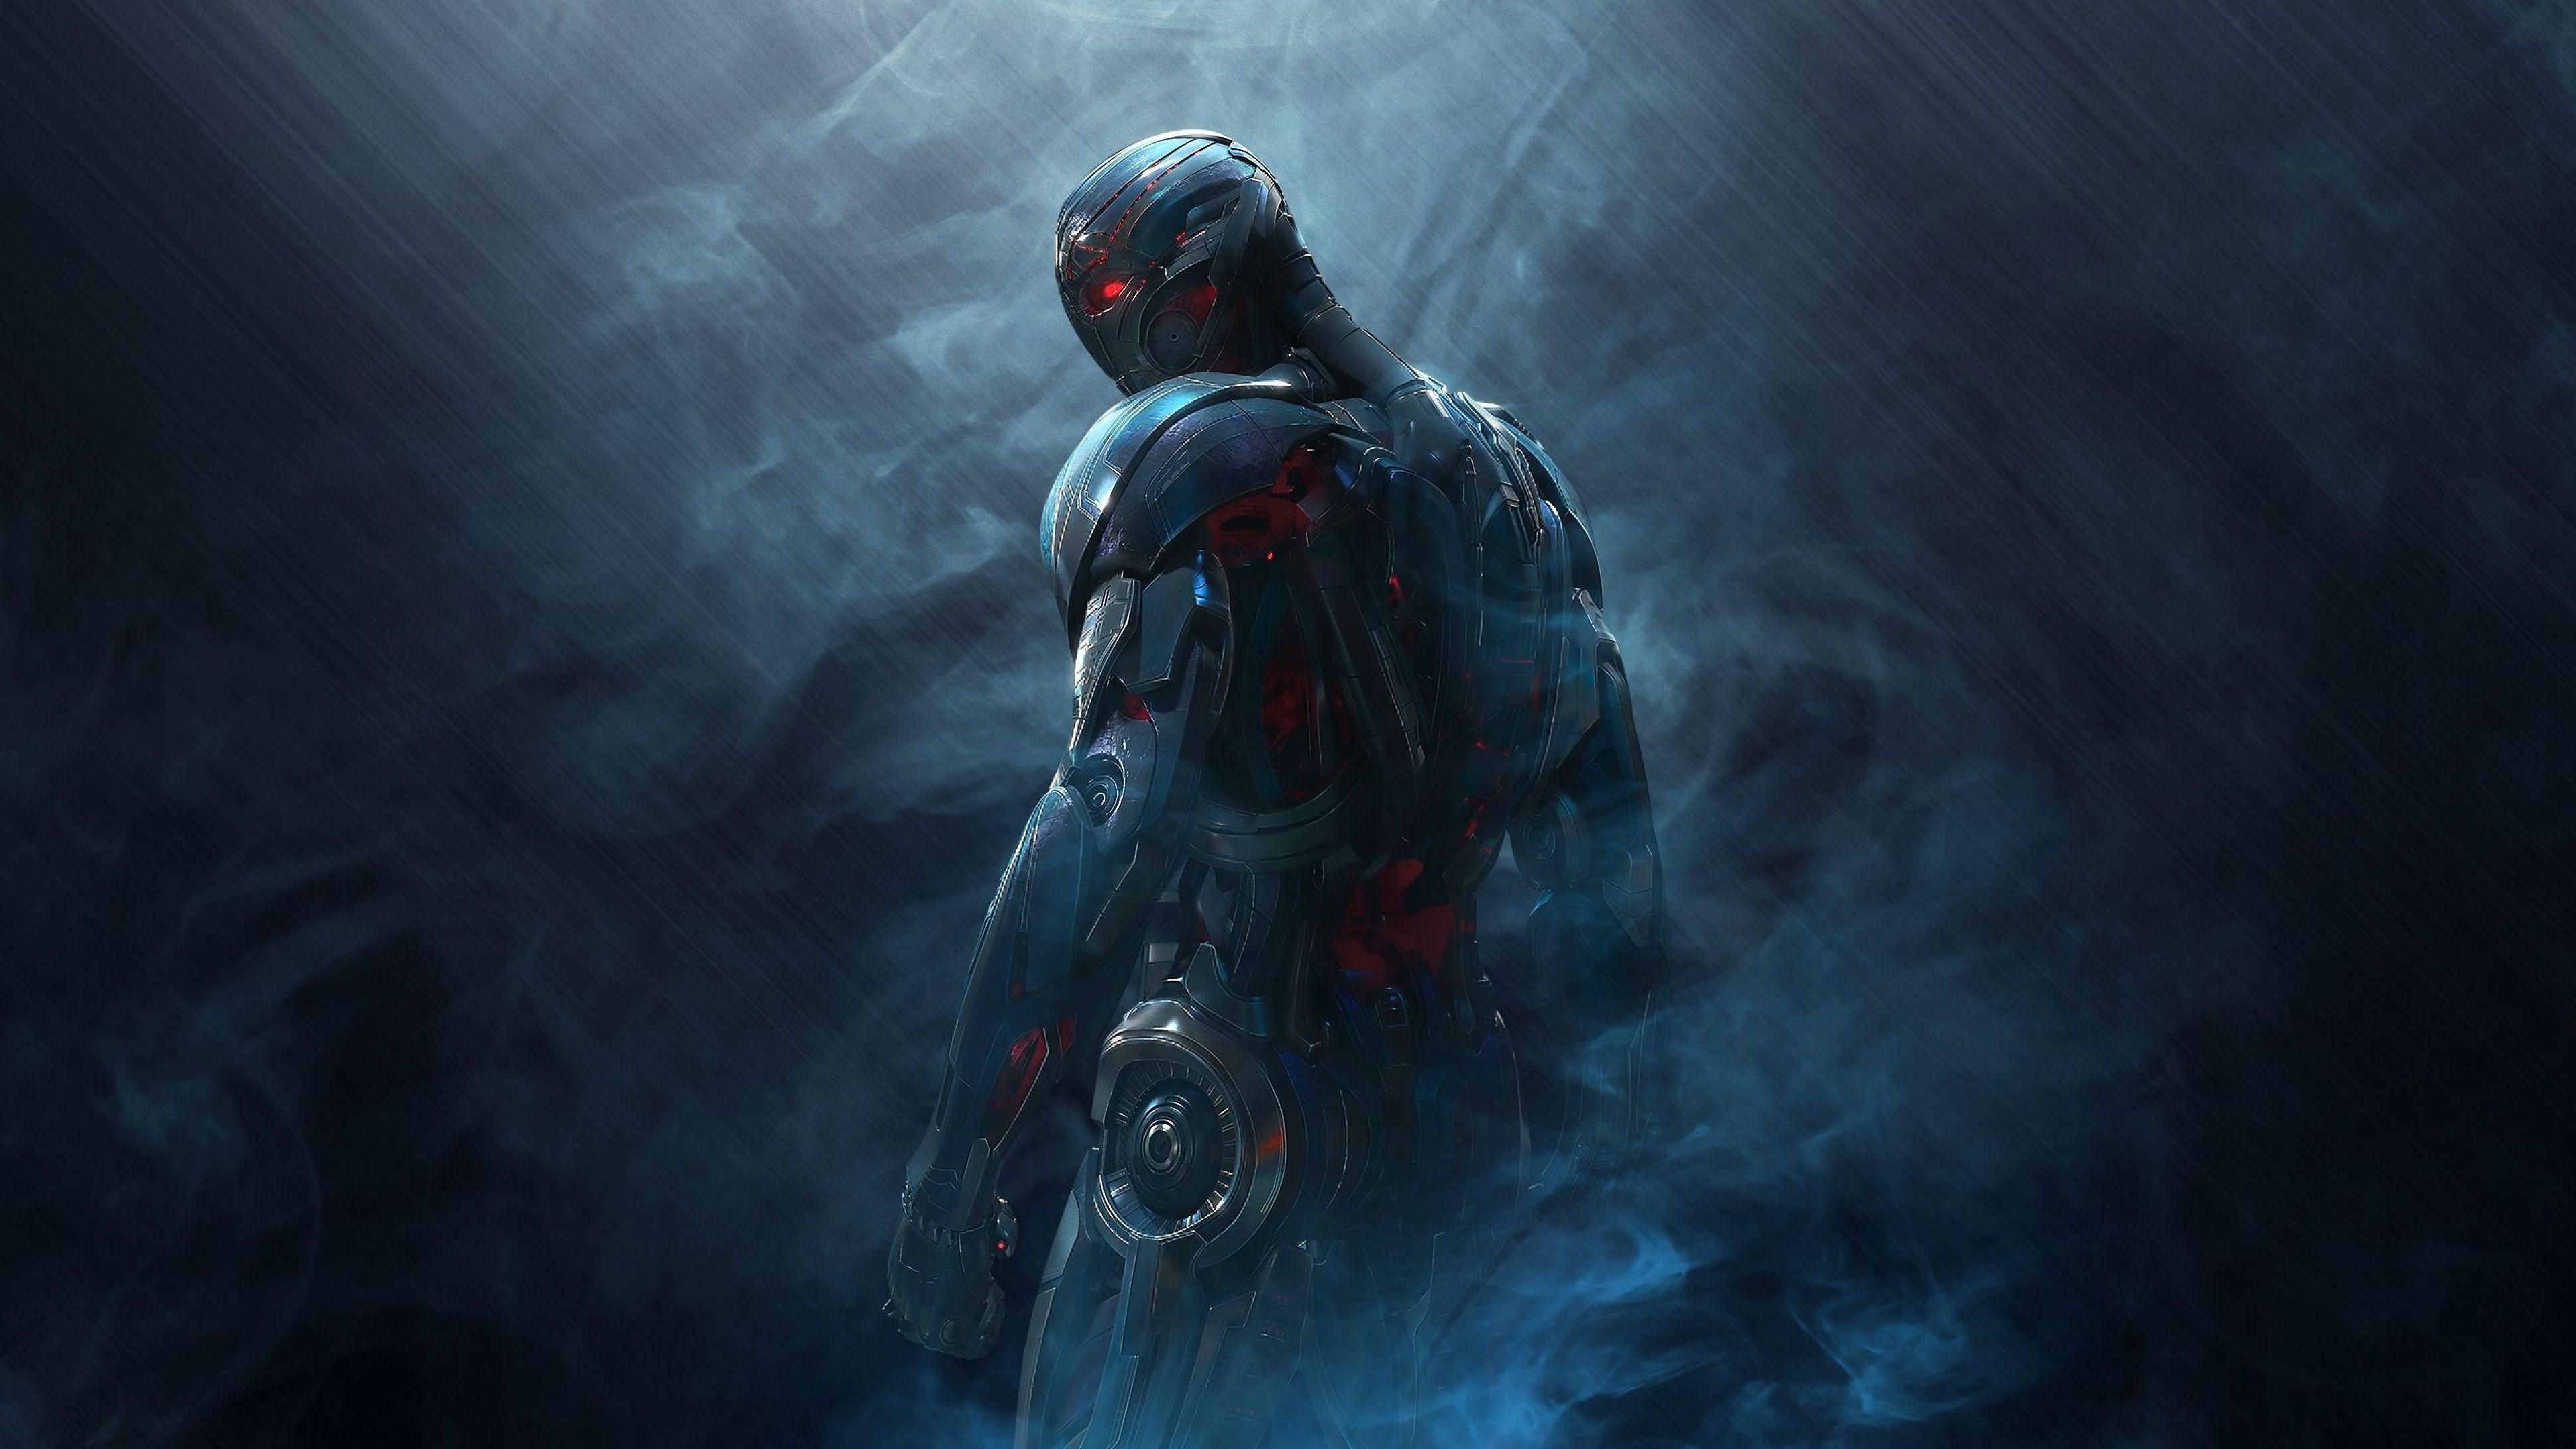 4K Ultra HD Ultron Wallpapers HD, Desktop Backgrounds 3840x2160